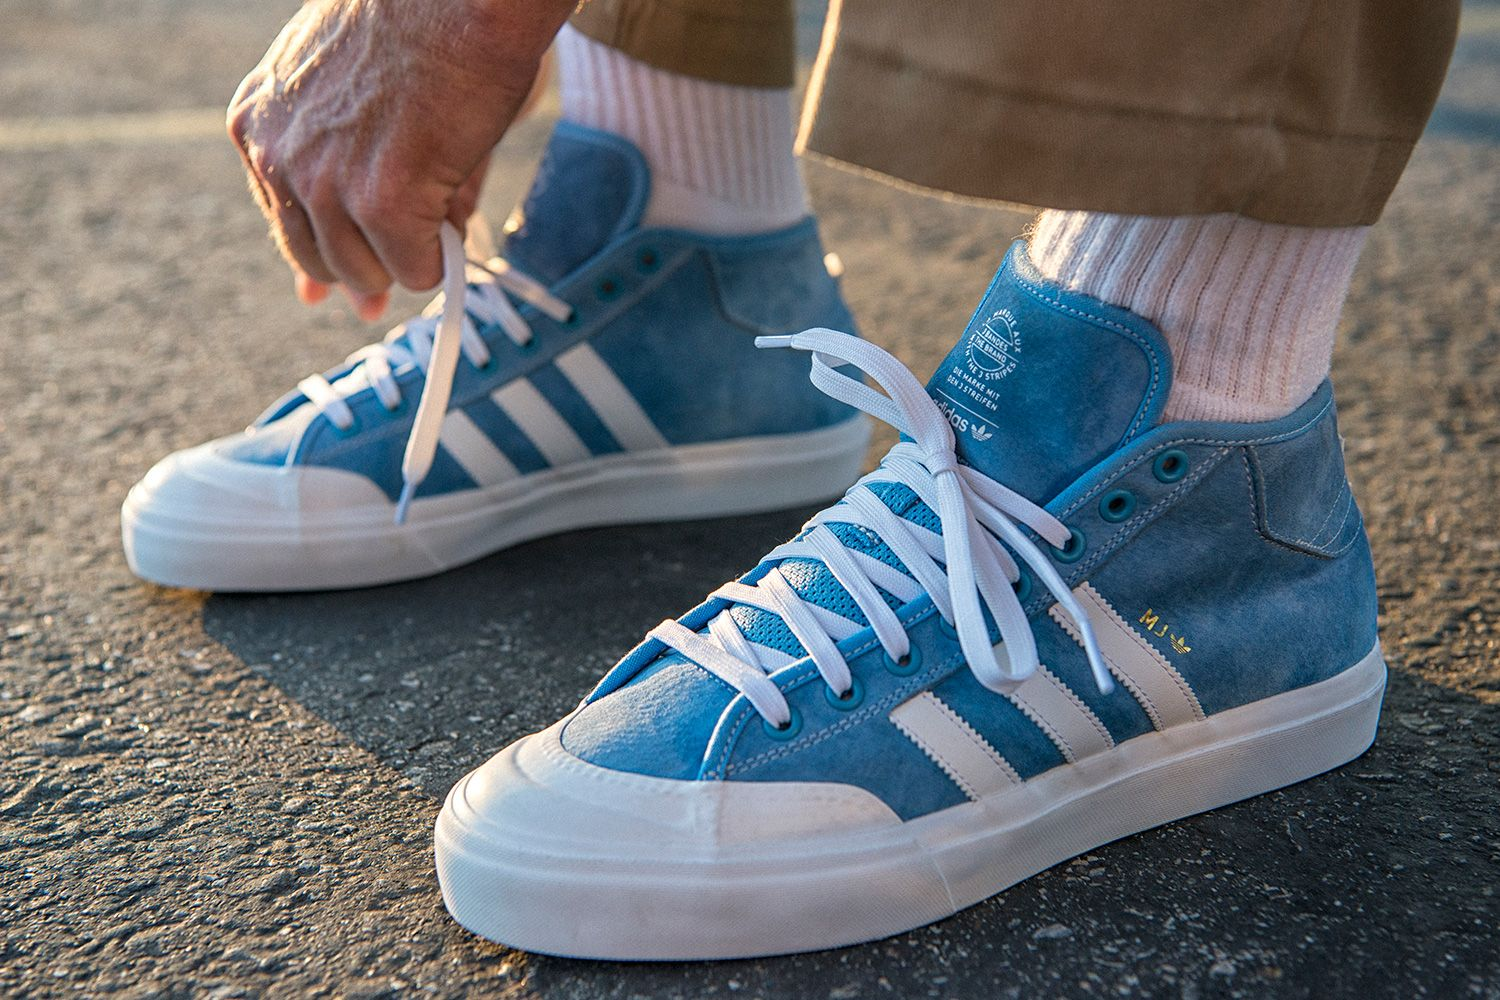 Marc Johnson is treated with a special variation of the classic adidas  Matchcourt Mid as a Global Pro team rider for adidas Skateboarding. 1f38d2c80d